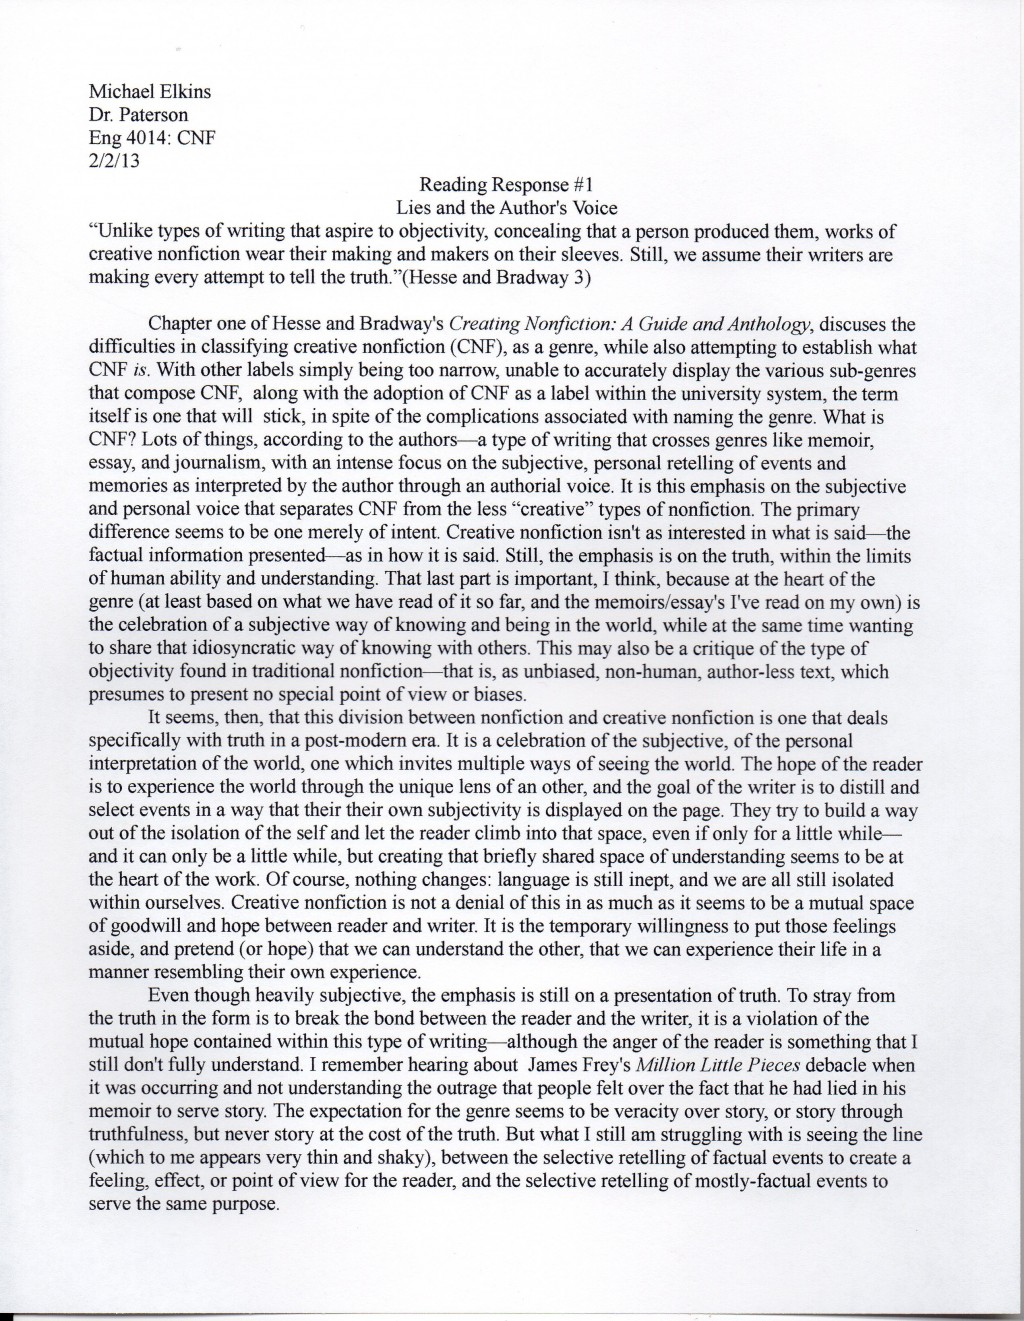 003 Word Essay Starting Persuasive Sample Zot0g Unique 400 Structure Topics Large